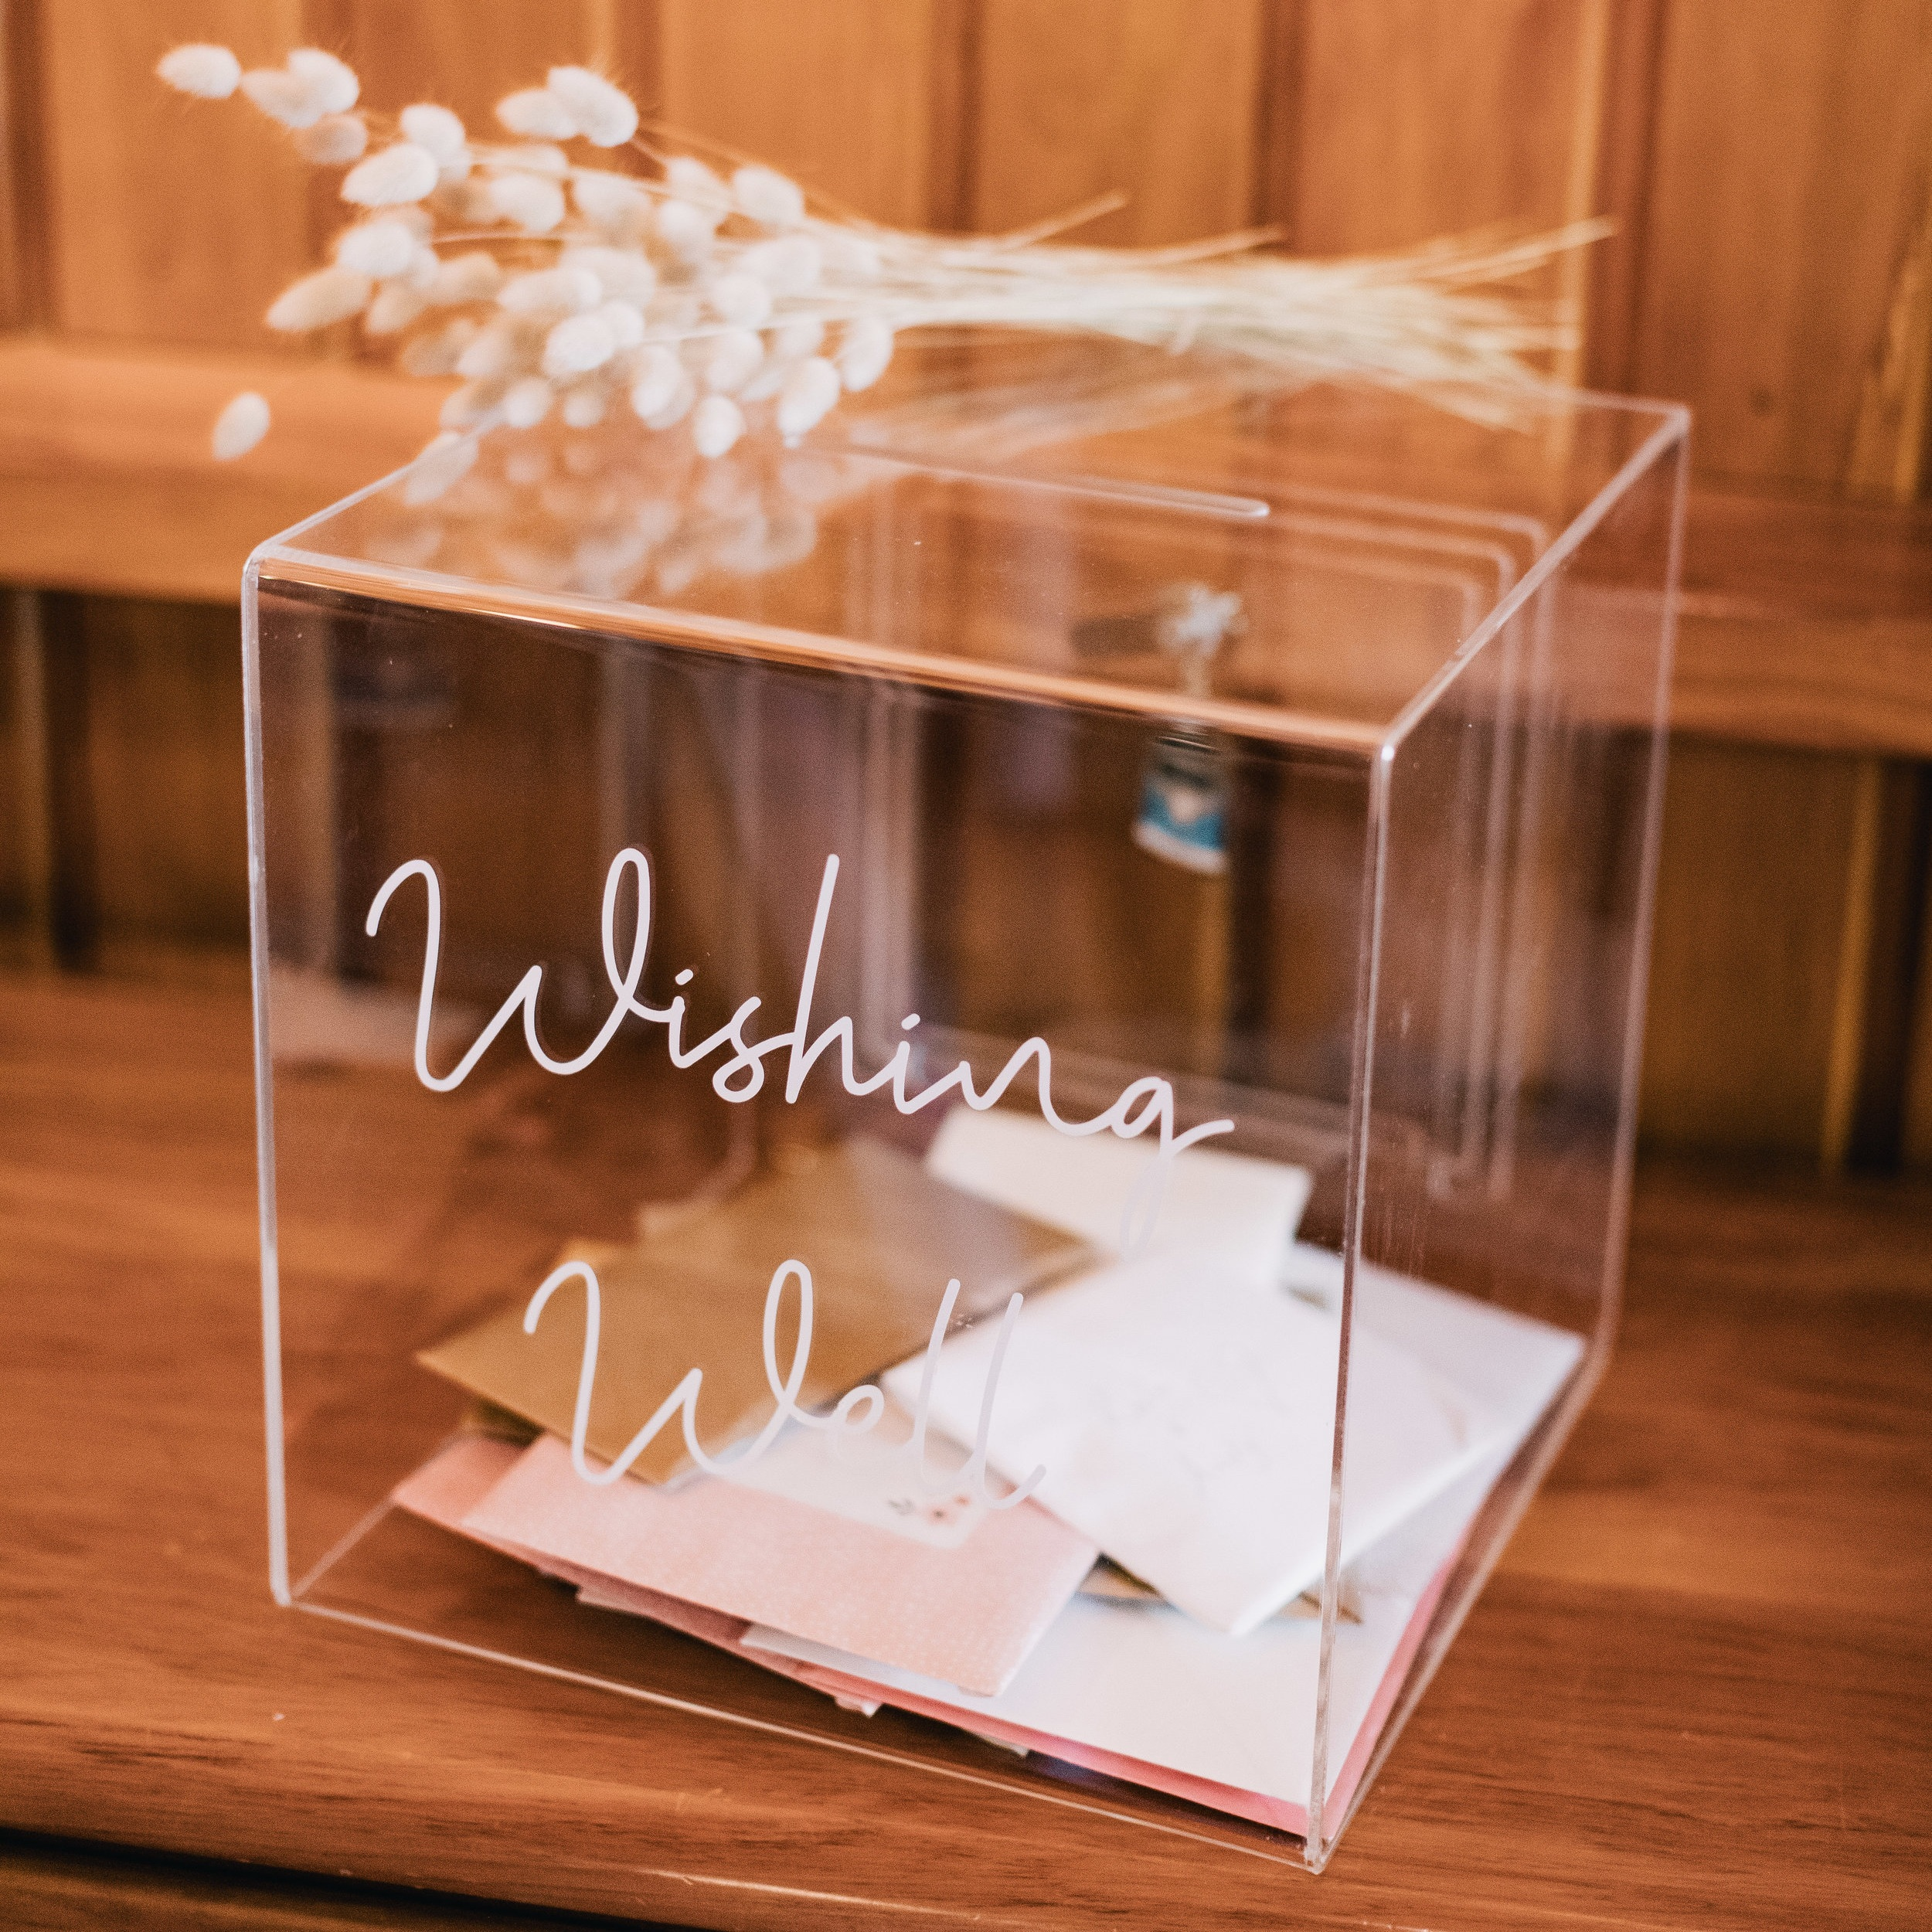 Acrylic Wishing Well - Secure your cards in this pretty wee lockable box